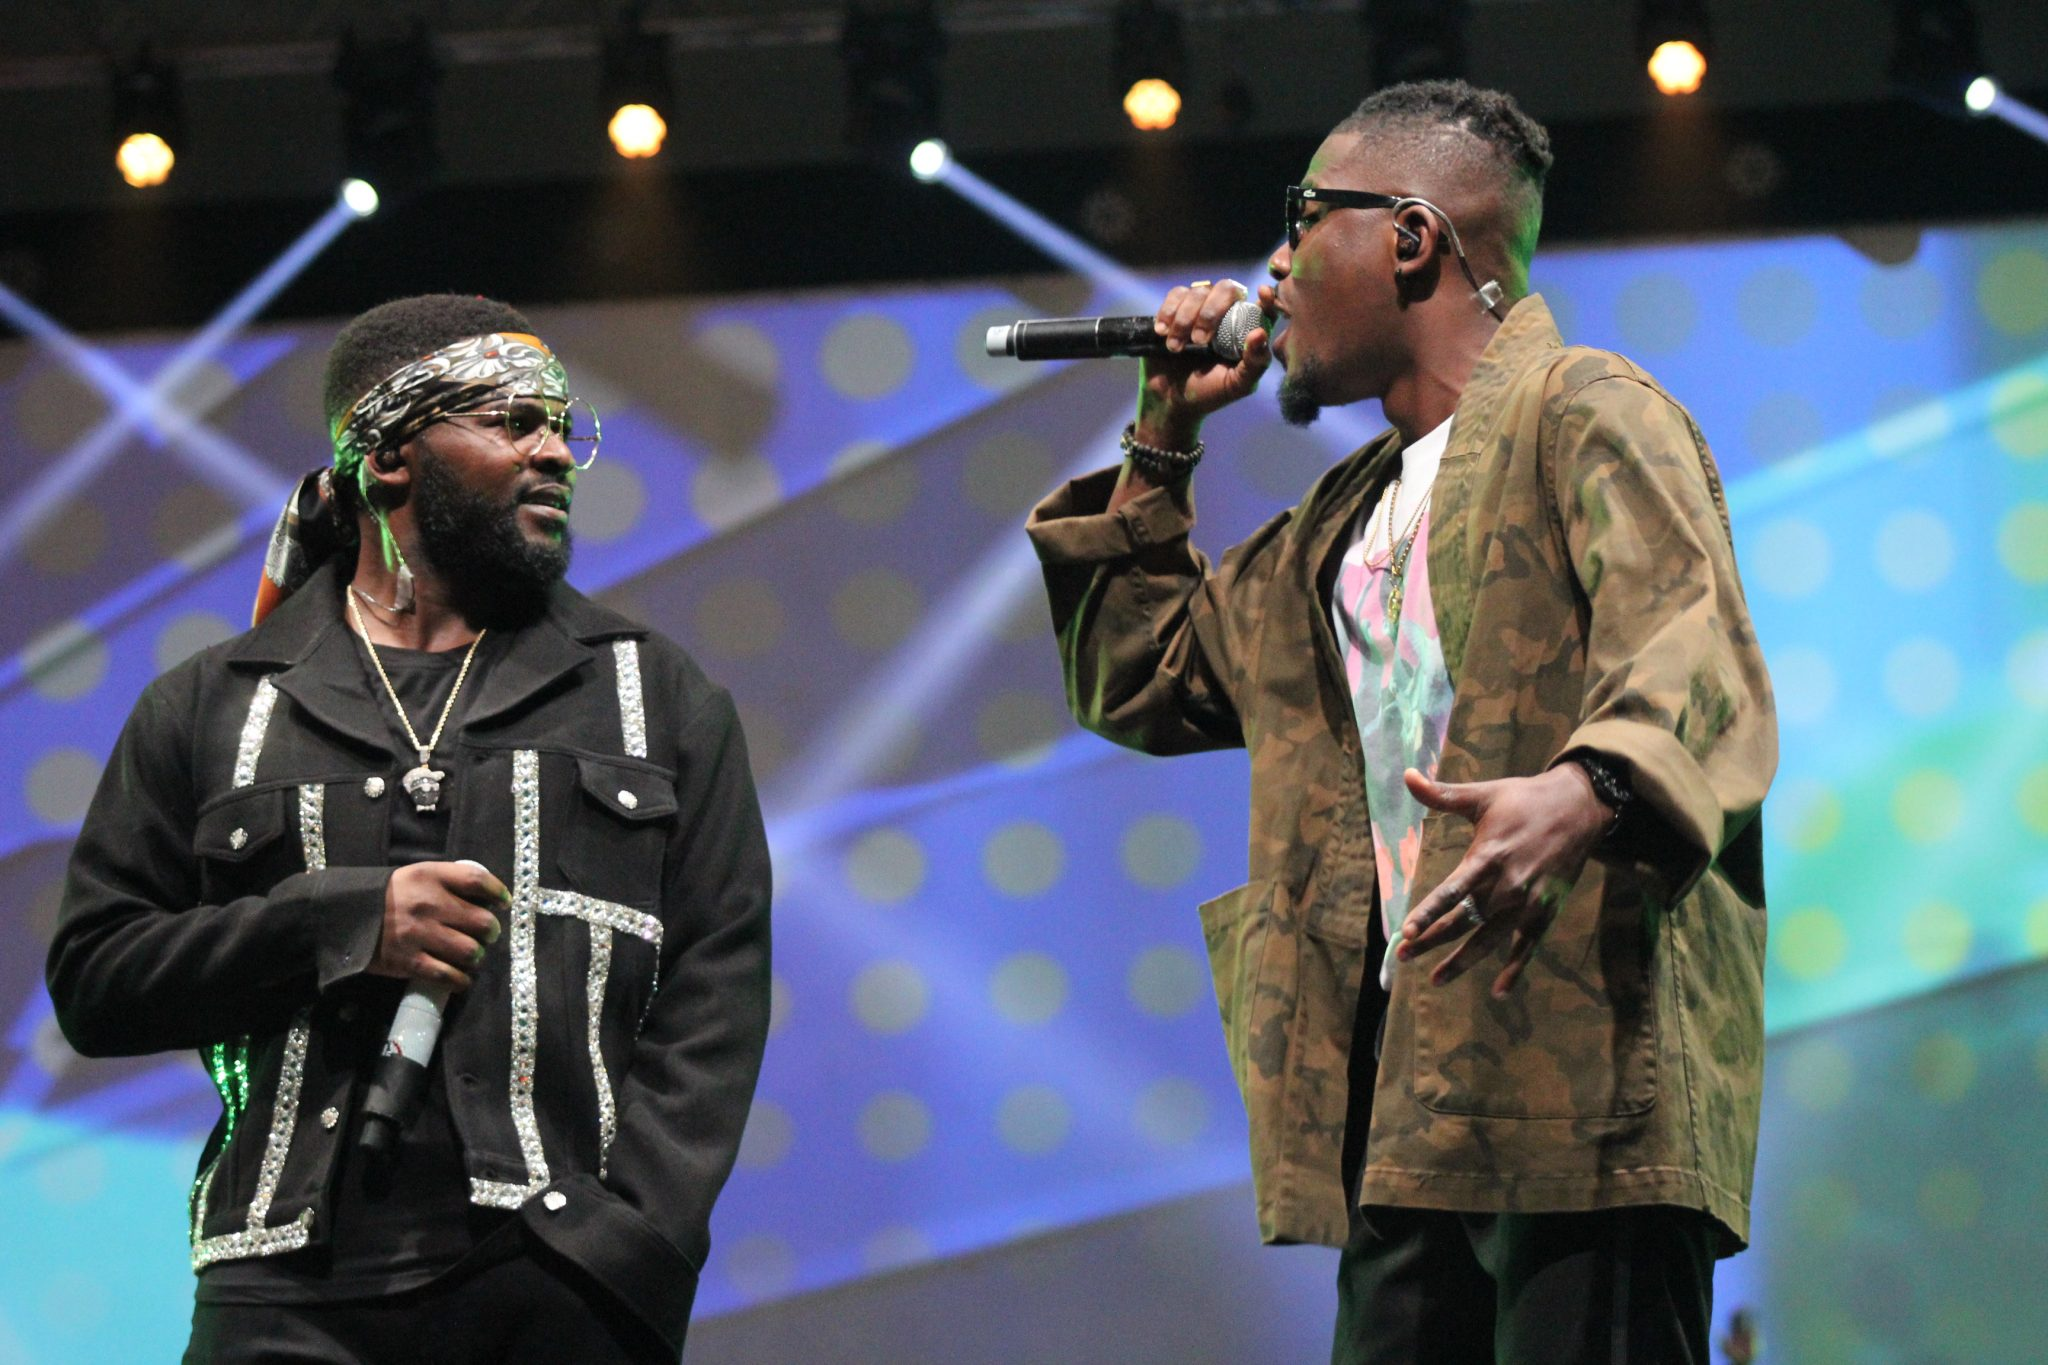 Falz and YCee performing last night at The Falz Experience